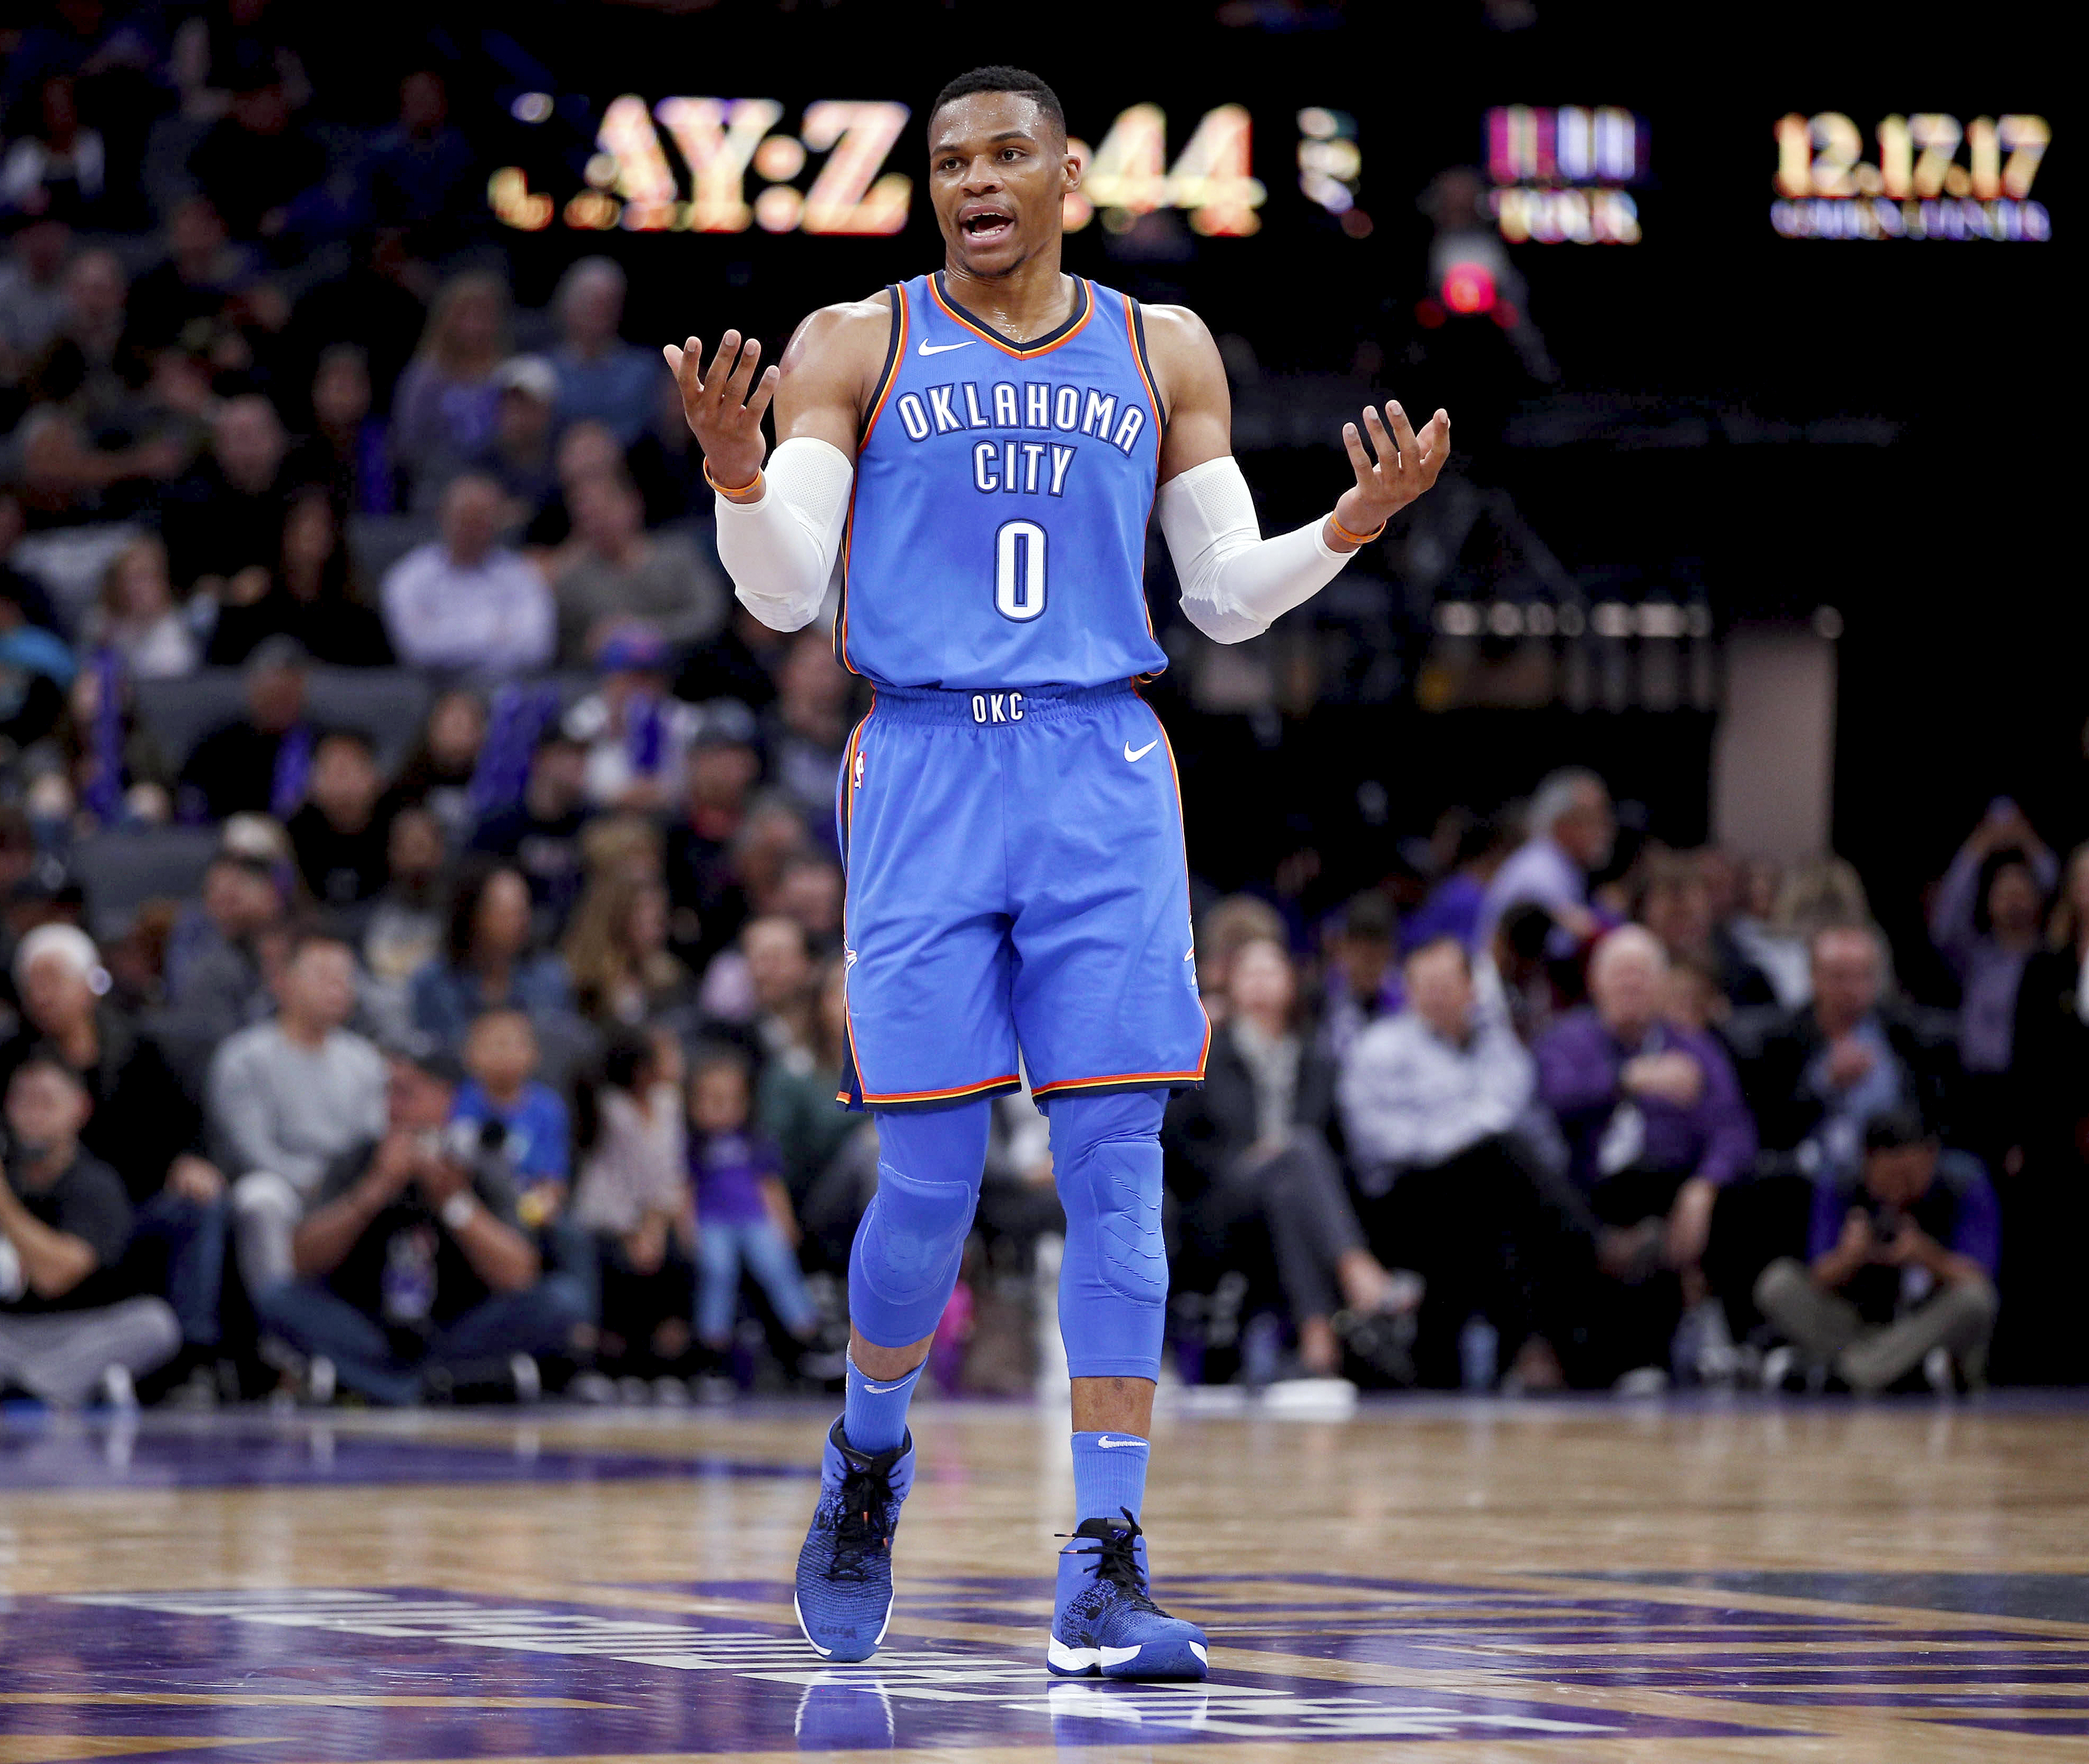 e035978a69a Morning Tip Mailbag Your Questions On Kia Mvp Chase Nba Coaches